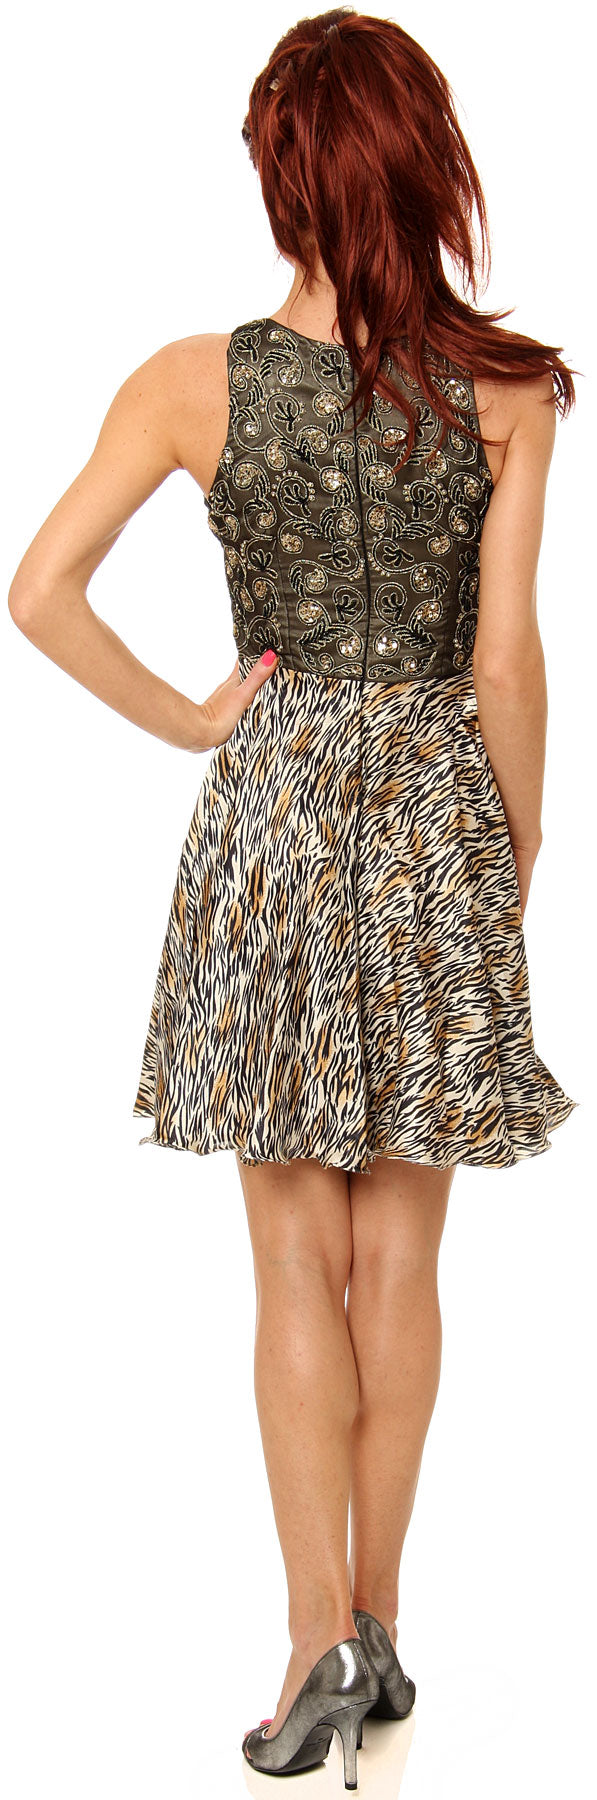 Back image of Sleeveless Beaded Bust Short Party Dress With Print Skirt